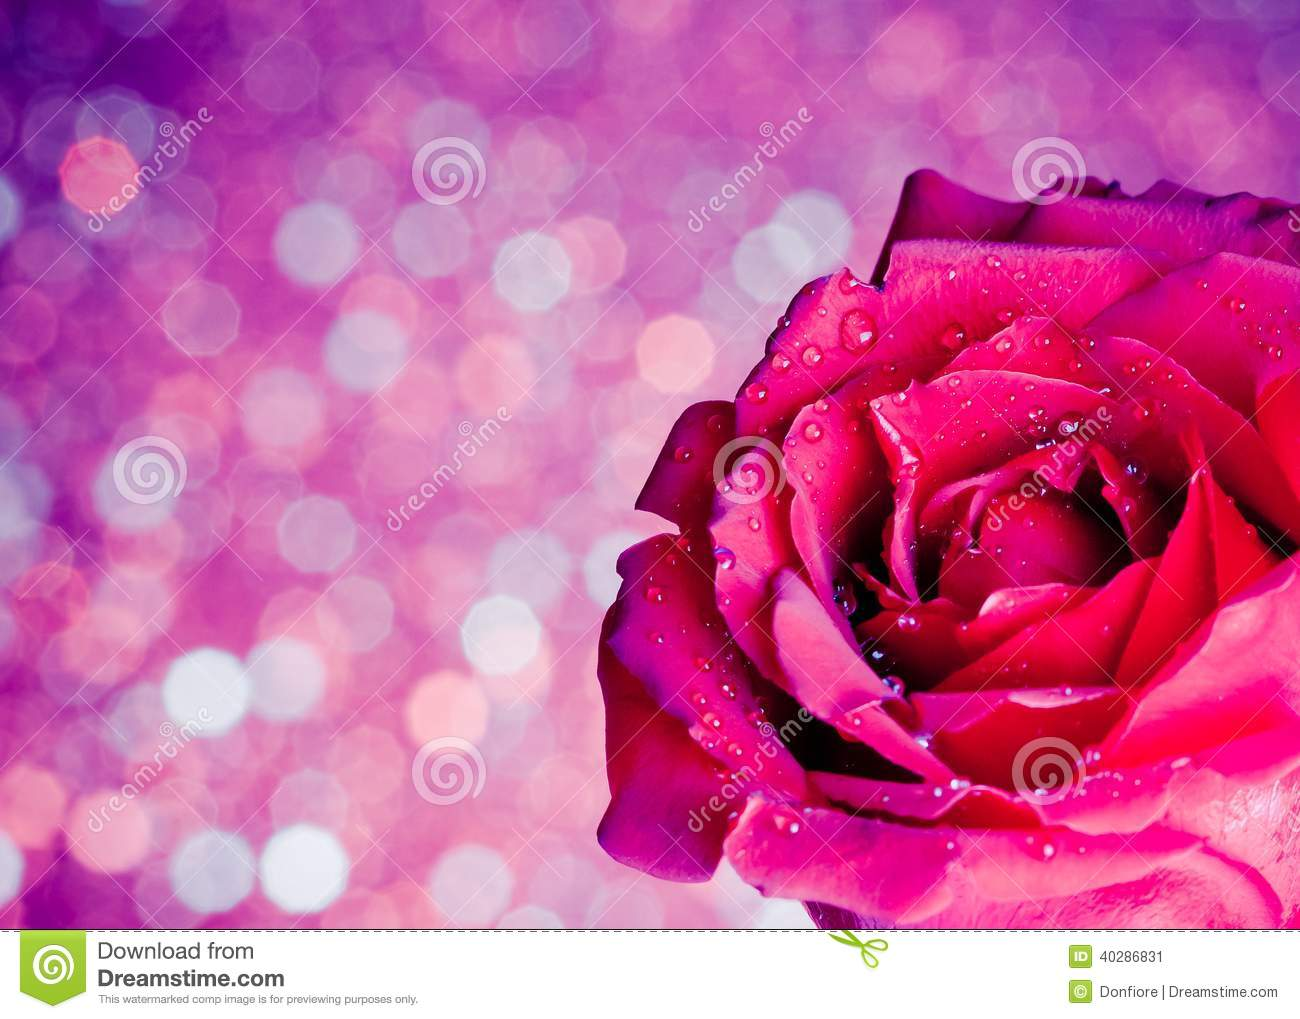 Rose On Blue And Violet Bokeh Background, Valentine Day And Love Concept